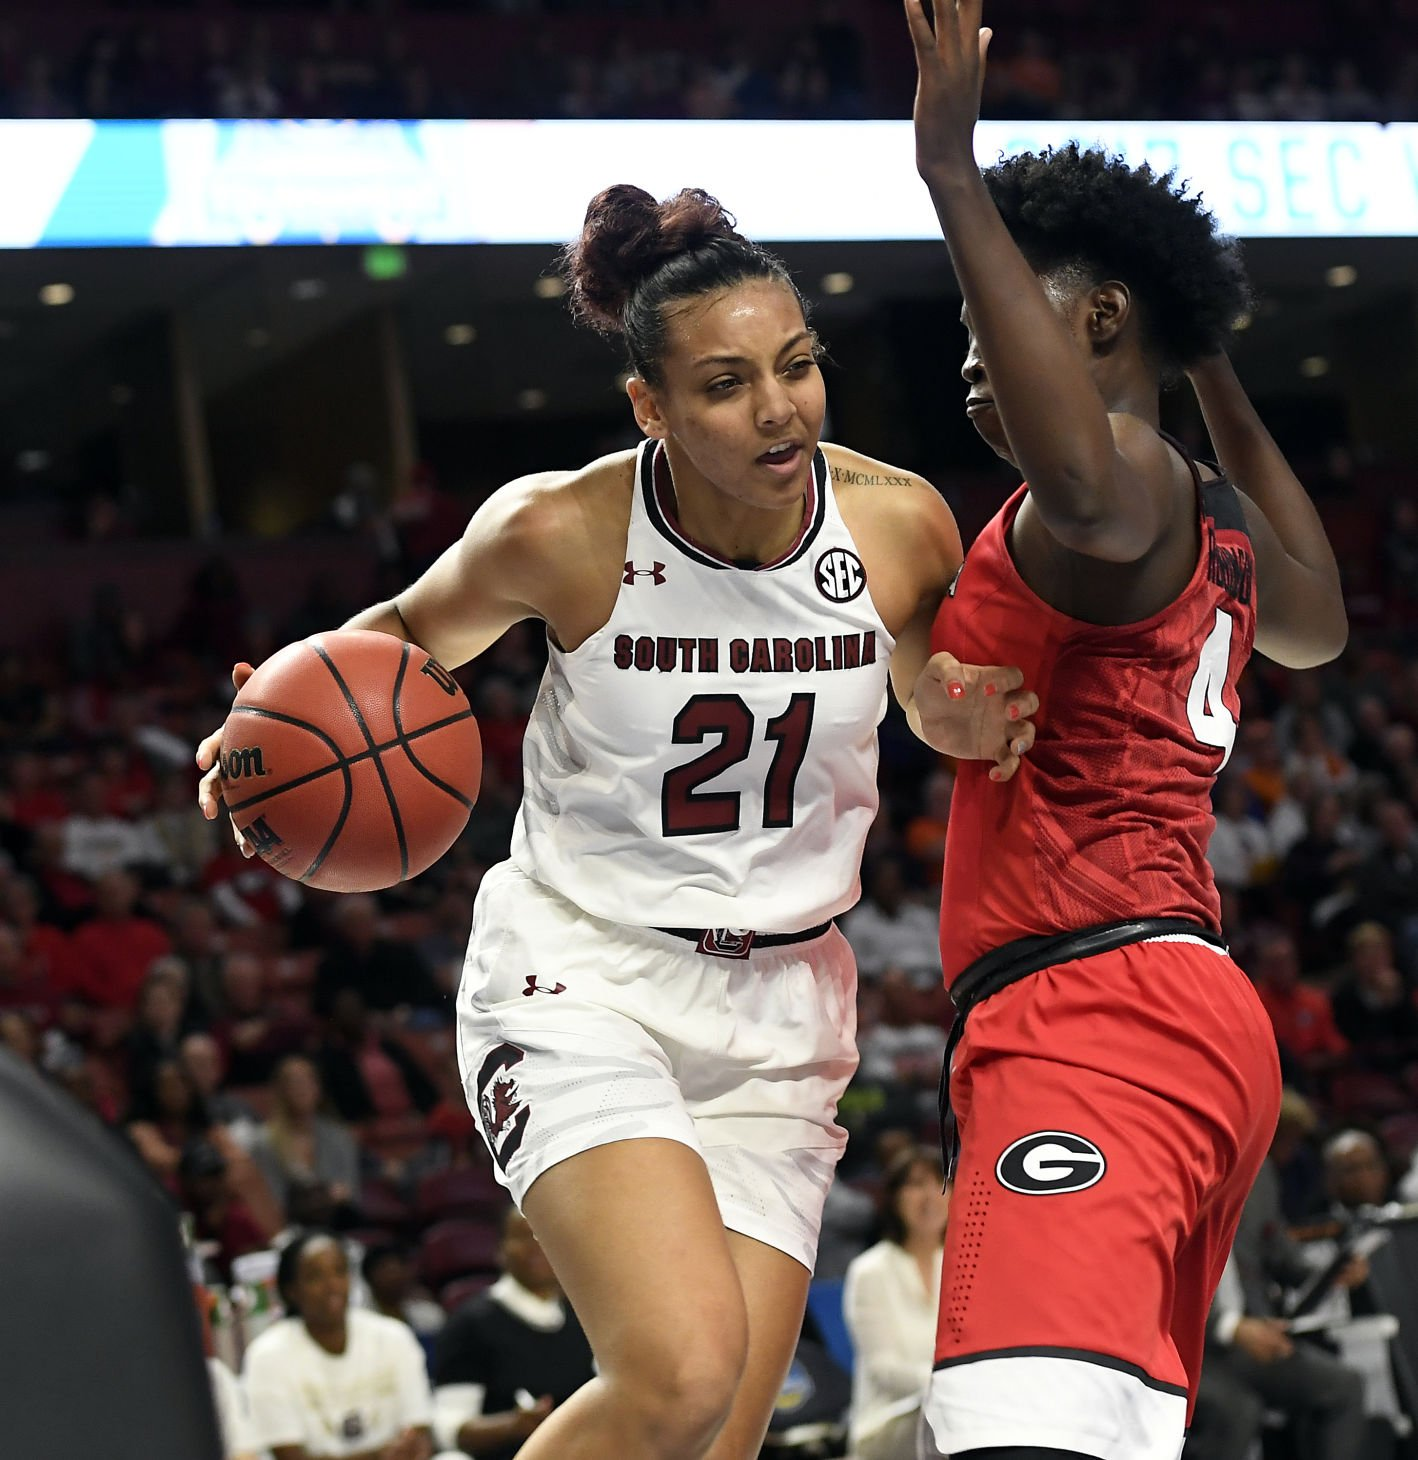 Wilson, Gray lead No. 5 SC  past Georgia in SEC quarterfinals